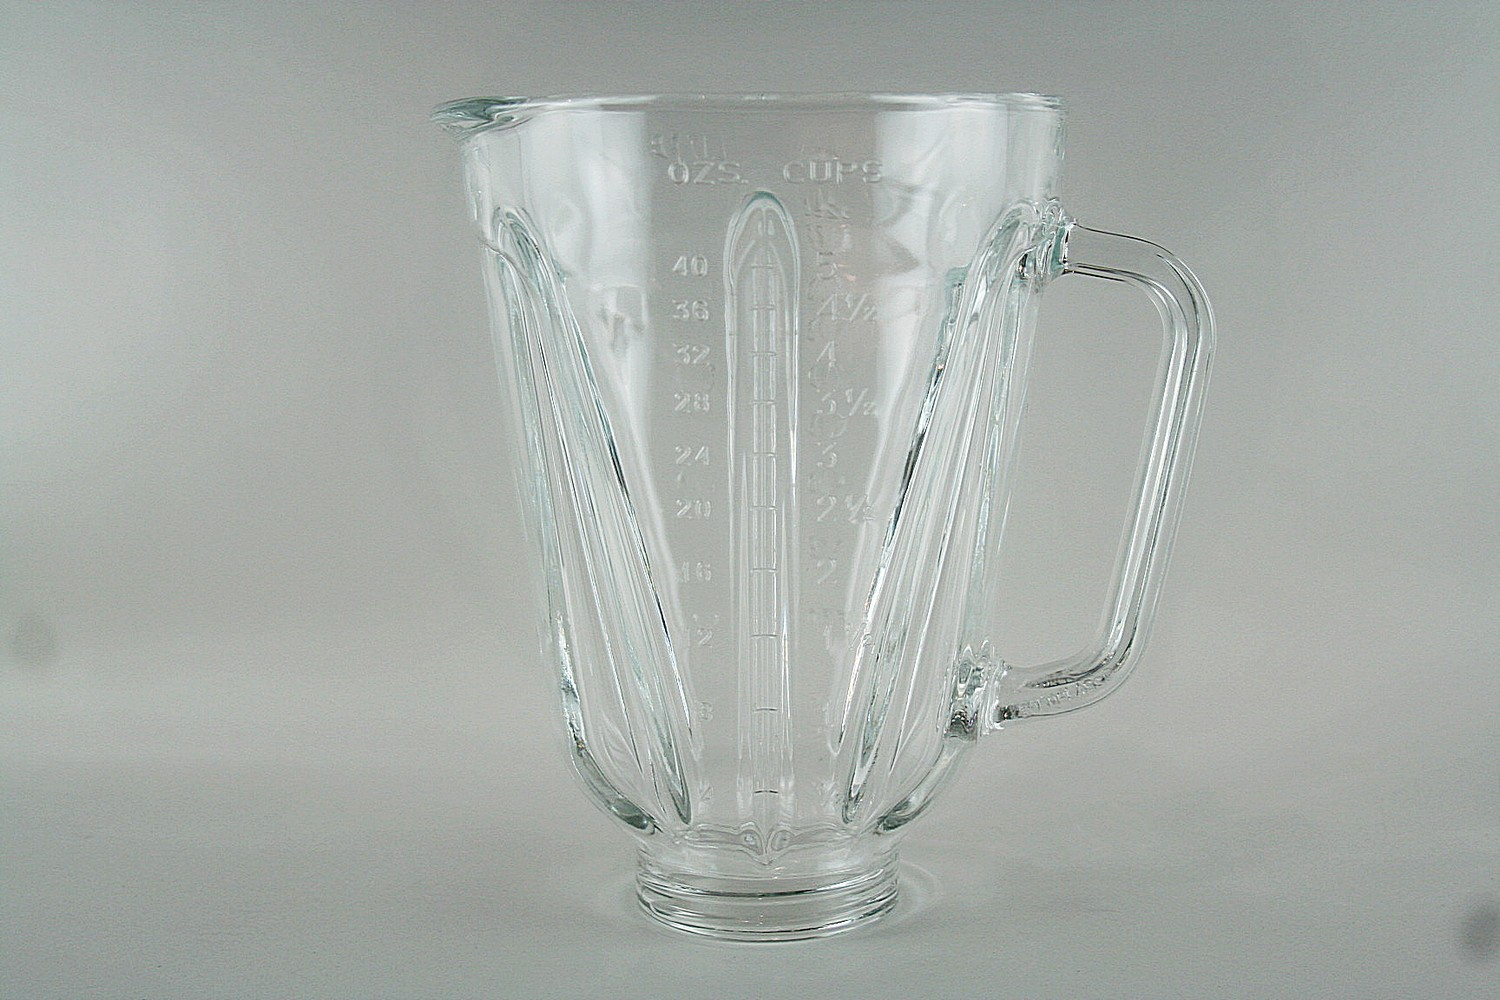 Container/40 oz Glass Blender